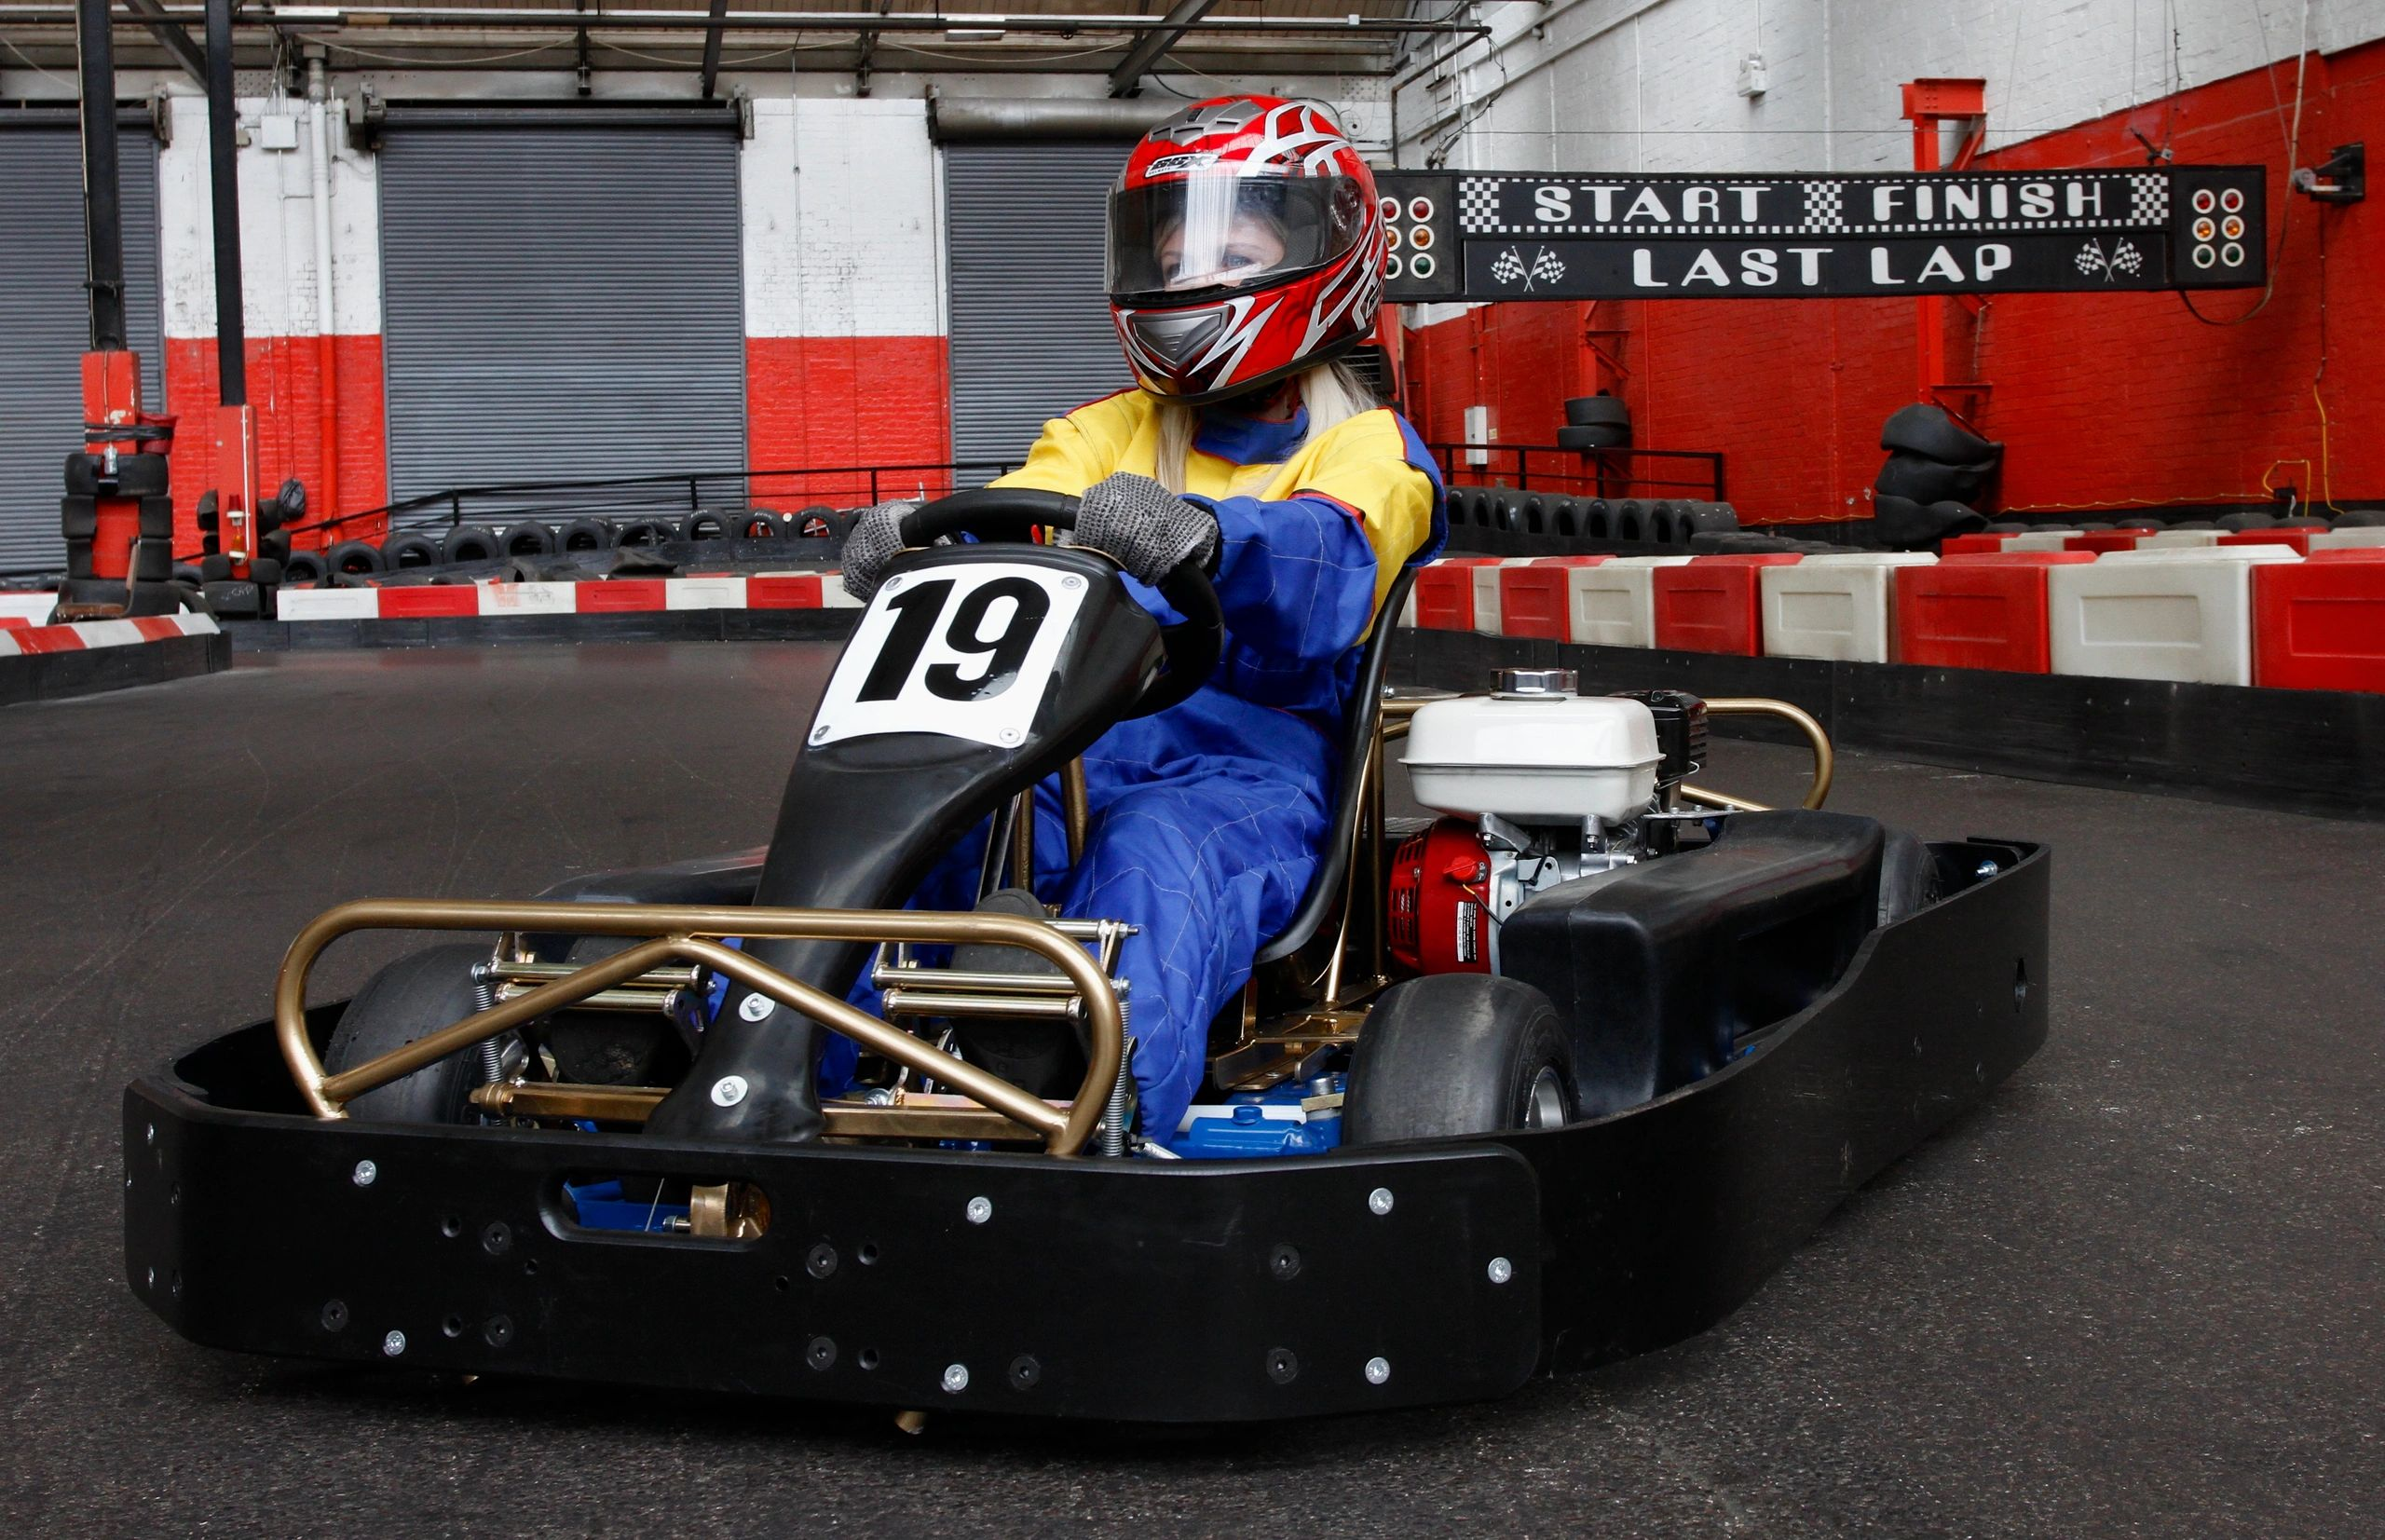 JDR Karting & Activity Centre offer Go Karting, Lasertag, Segways & Axe Throwing in Gloucester